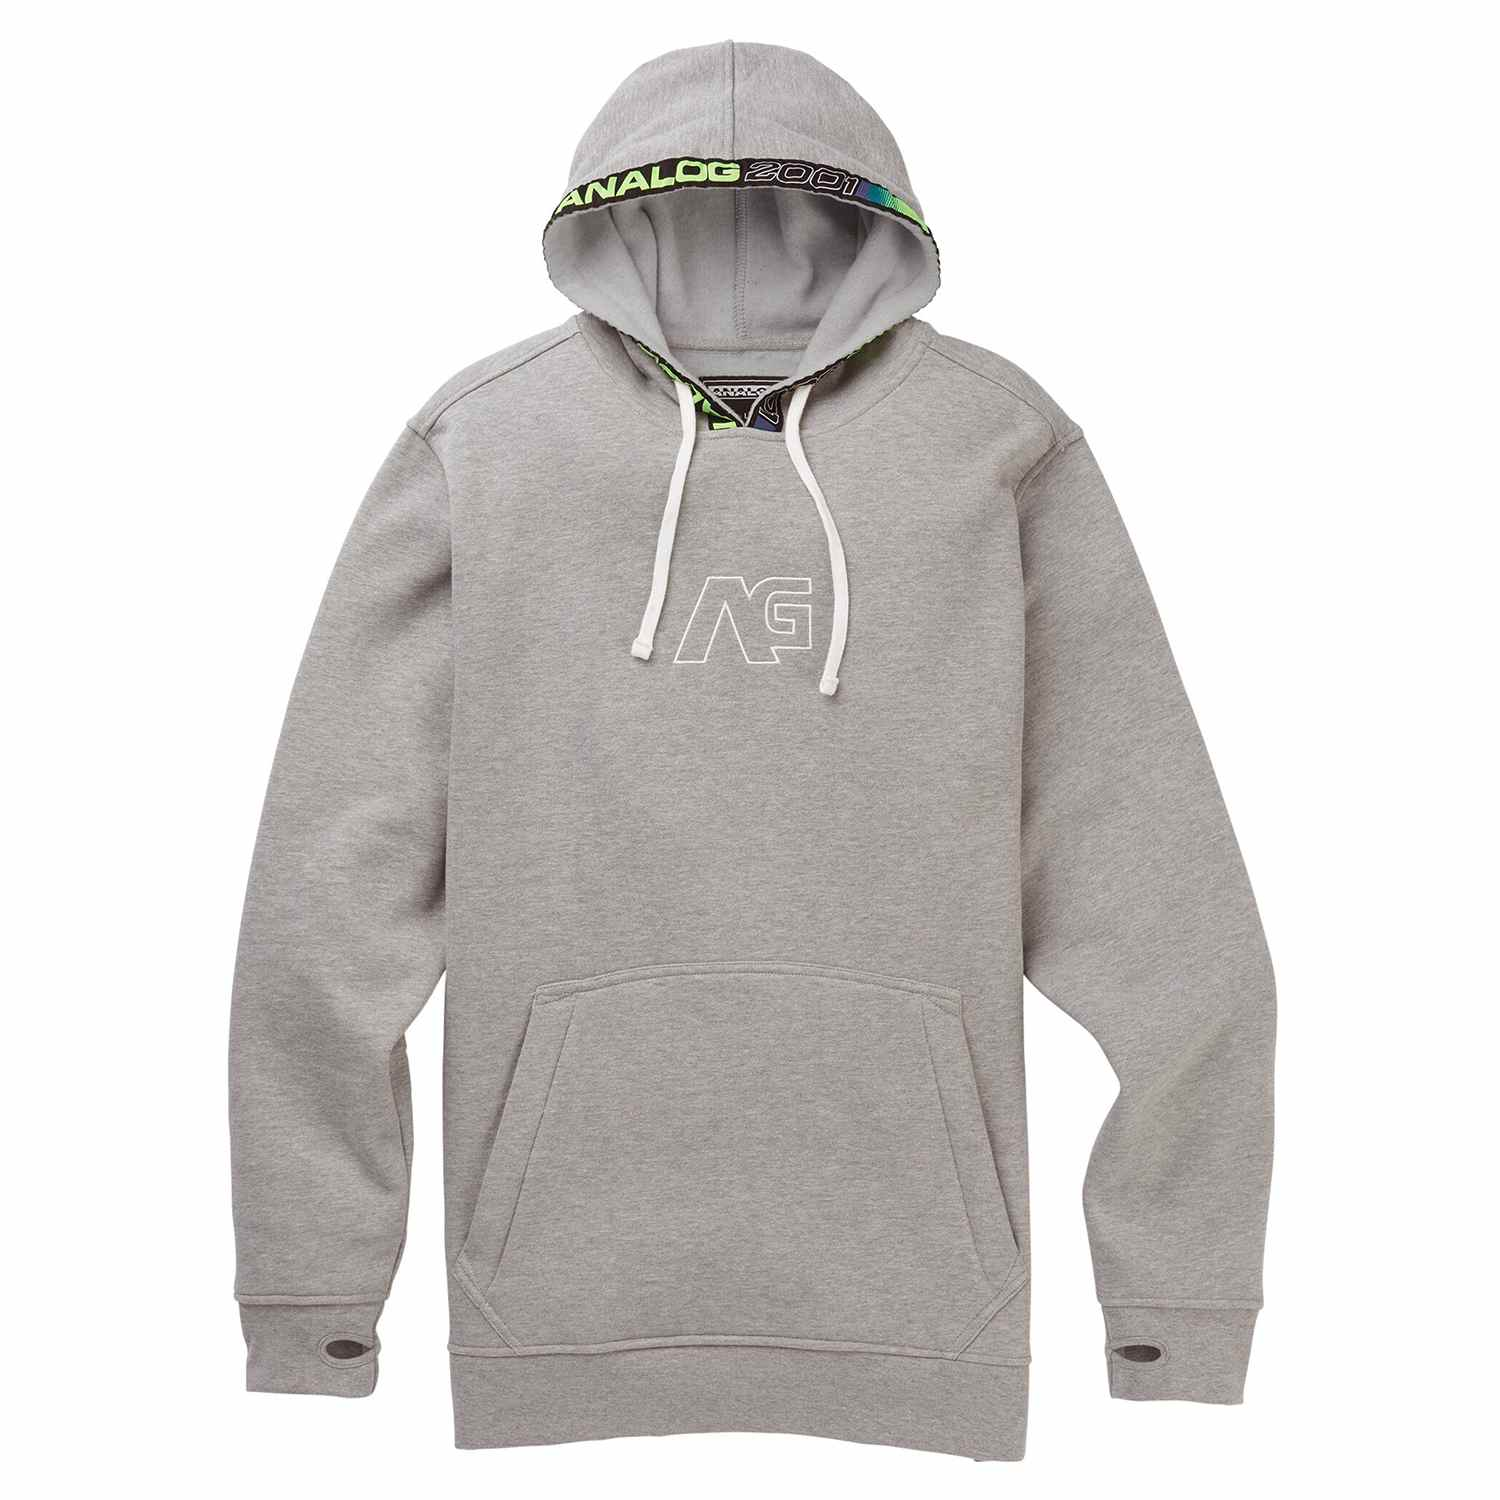 Analog Crux Pullover Gray Heather 2020